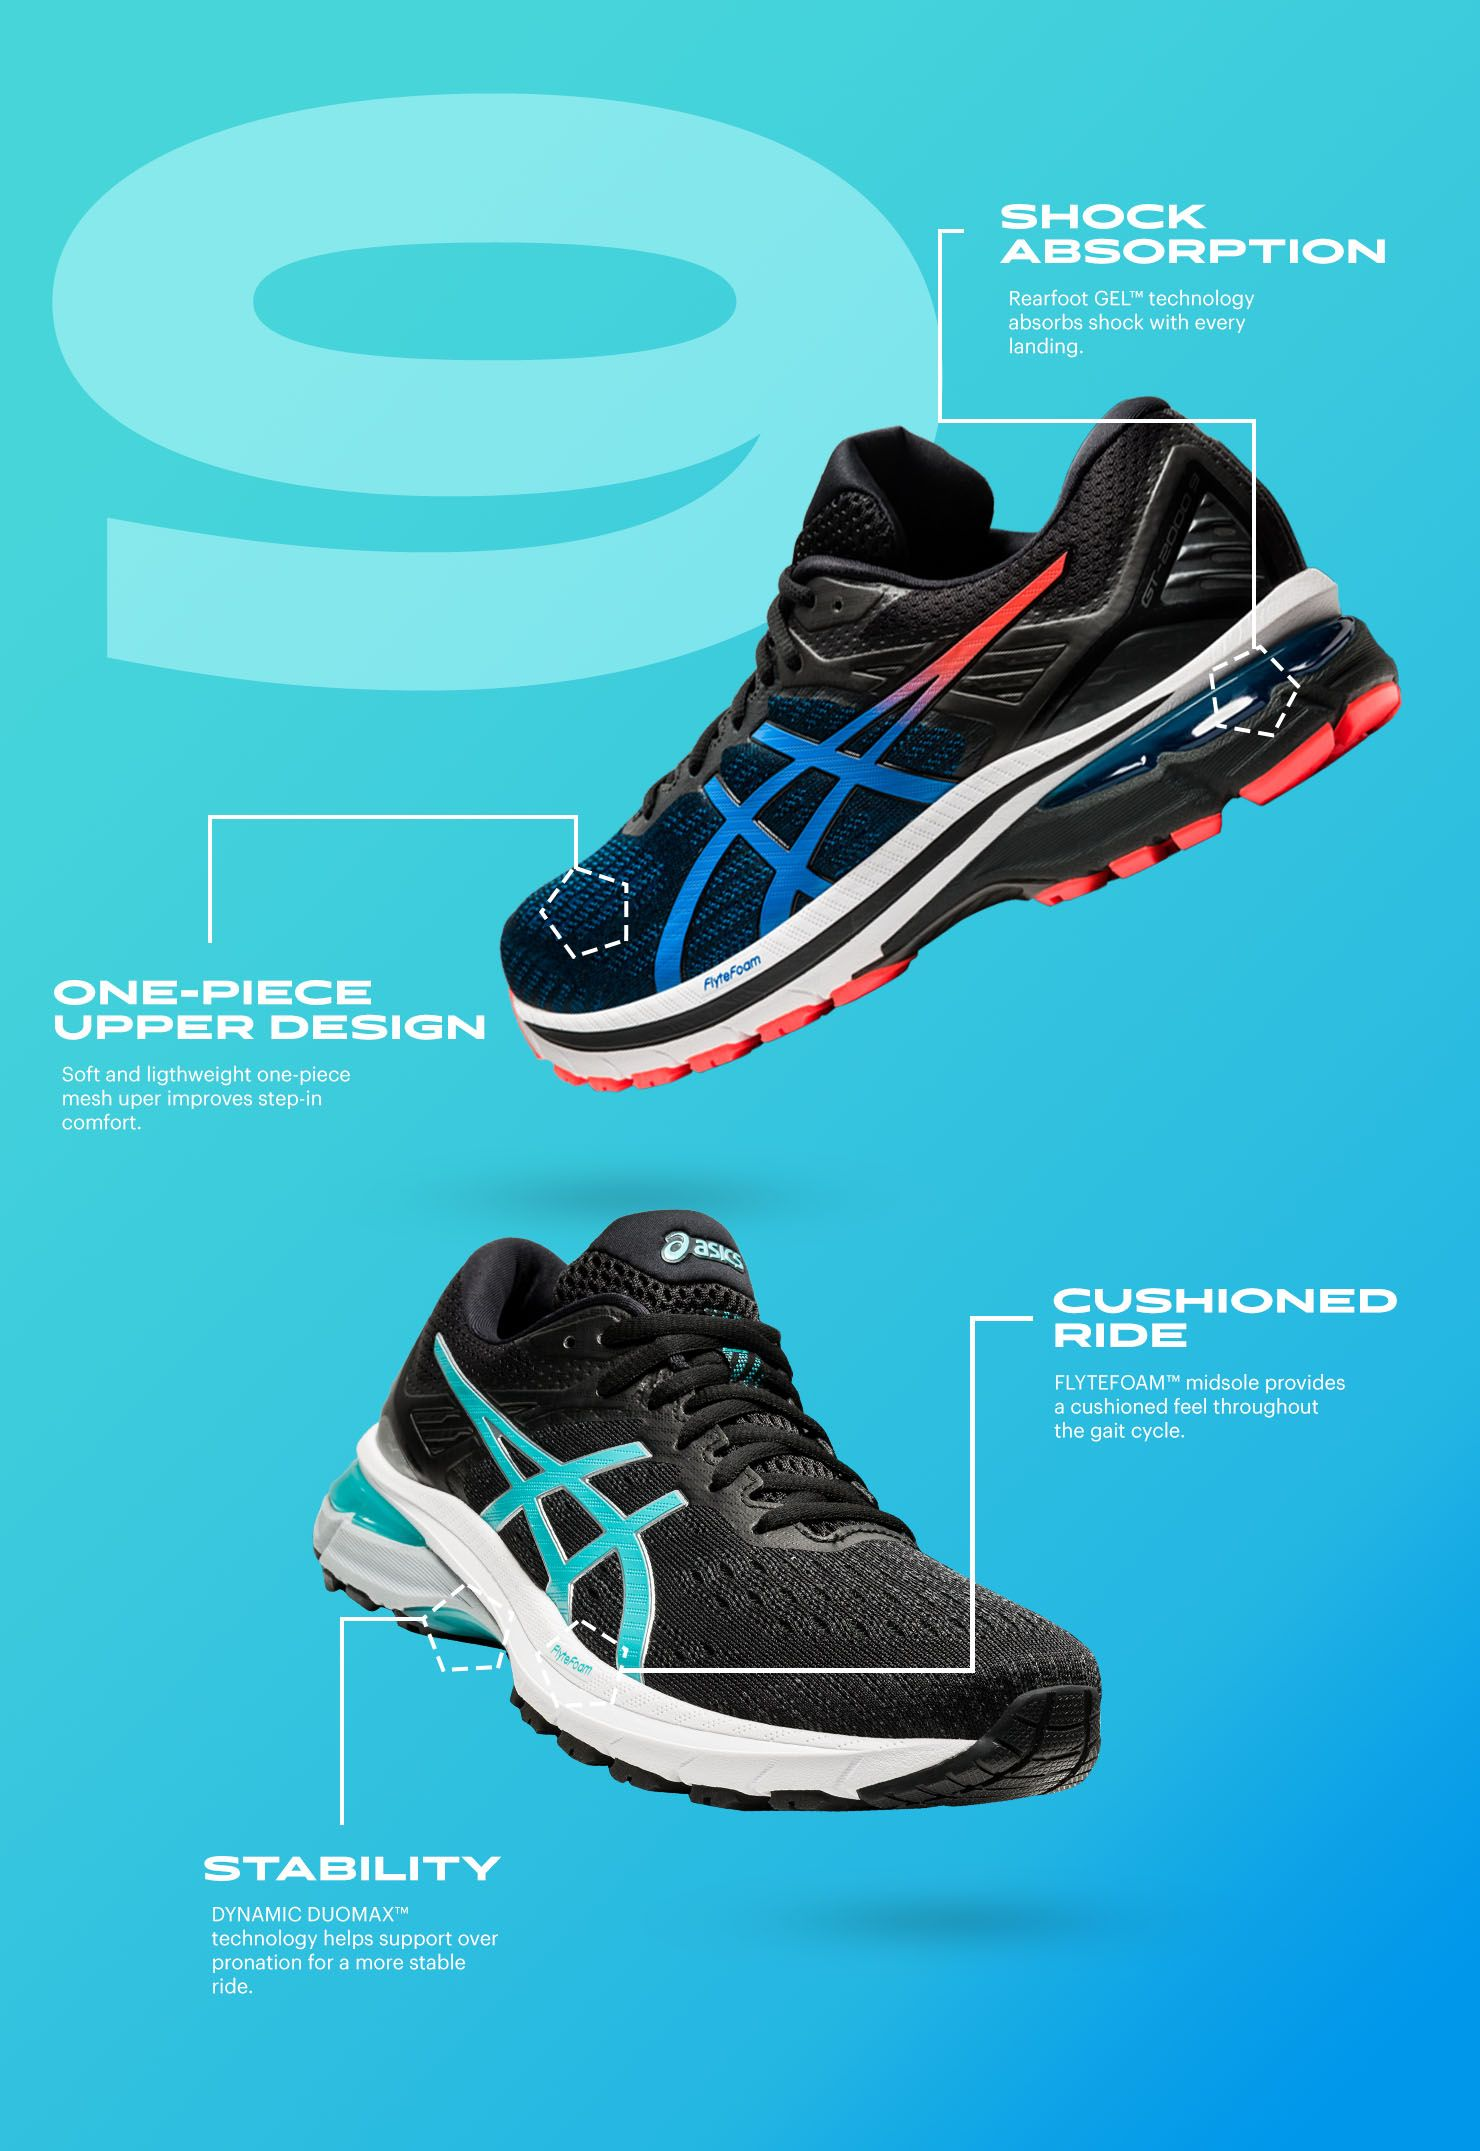 GT-2000 9 tech callout: Stability, one-piece upper design, shock absorption, cushioned ride